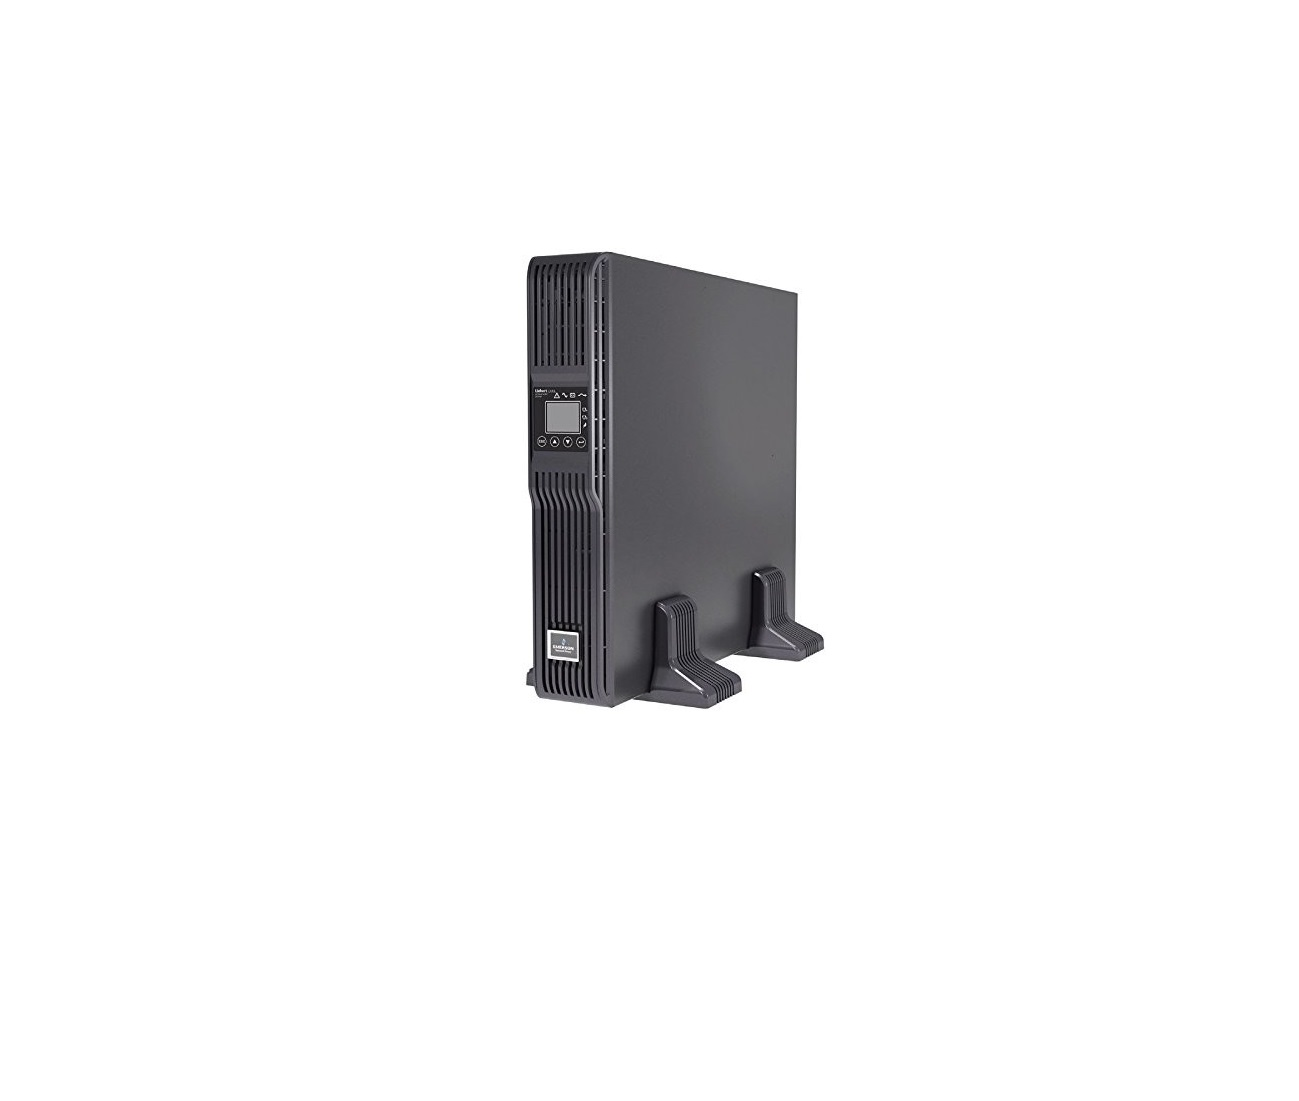 Liebert GXT4-3000RT120 Emerson GXT4 3000VA 120V 2700Watt UPS Rack-mountable